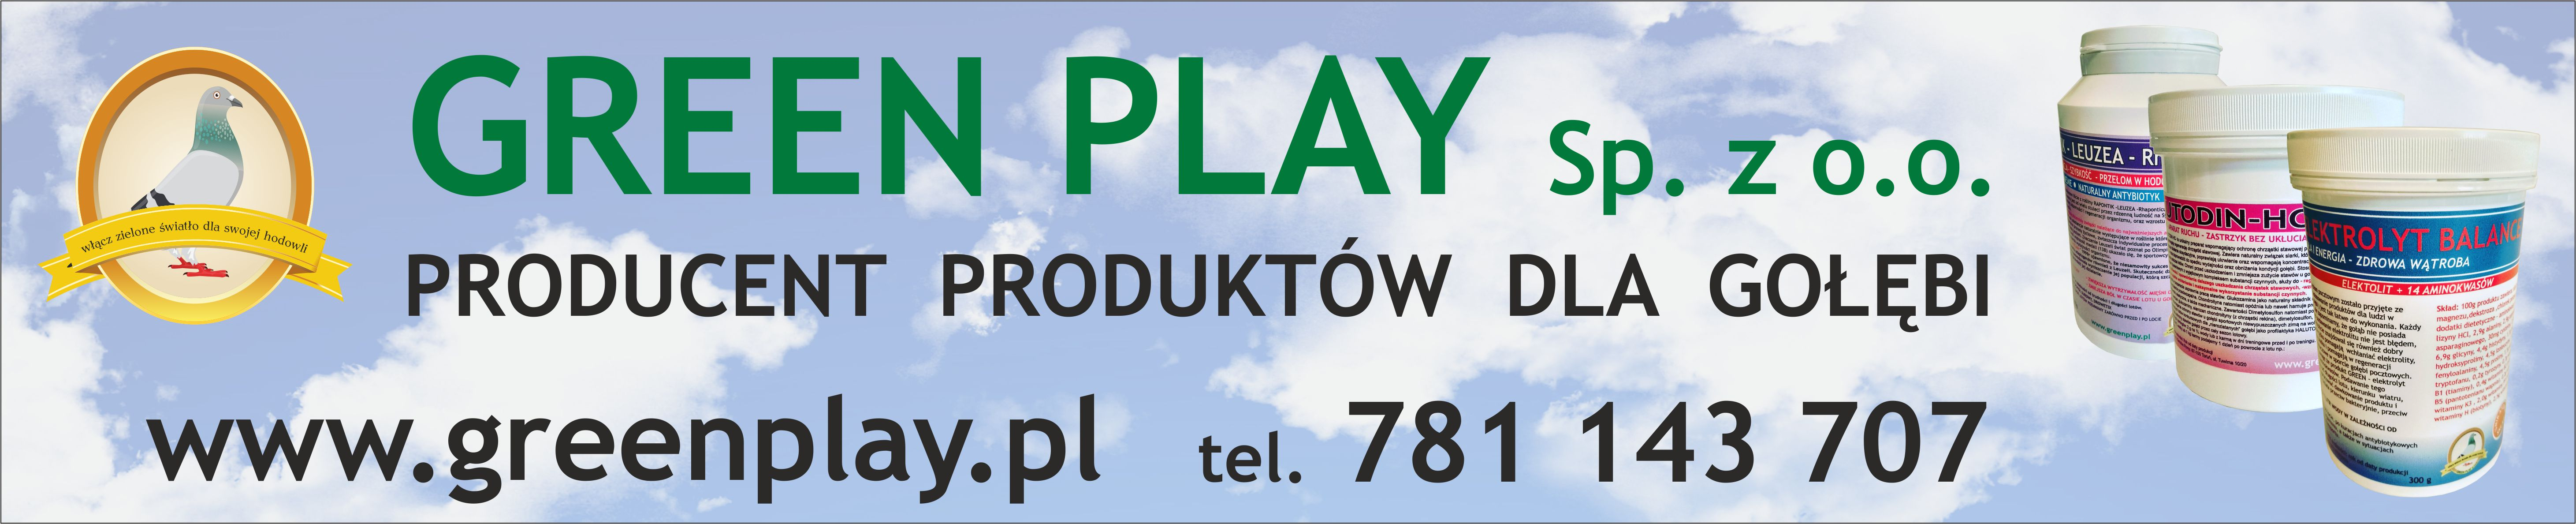 green_play